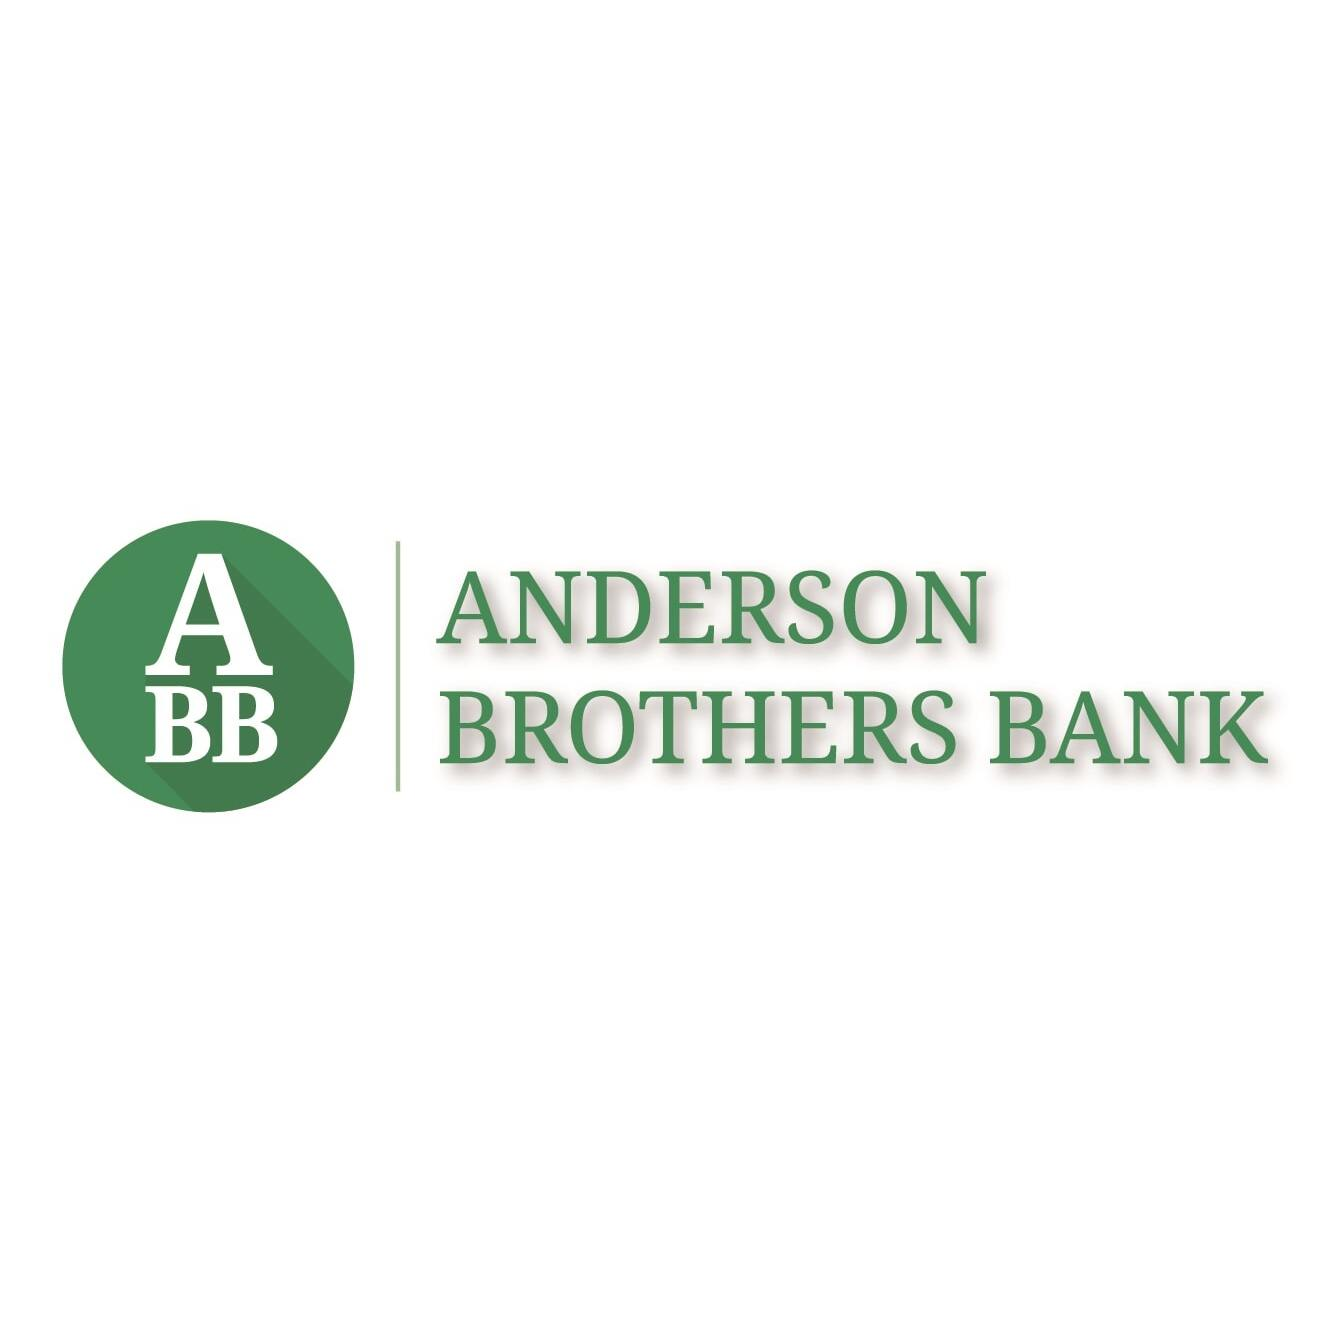 Anderson Brothers Bank - Mullins, SC 29574 - (843)464-6271 | ShowMeLocal.com